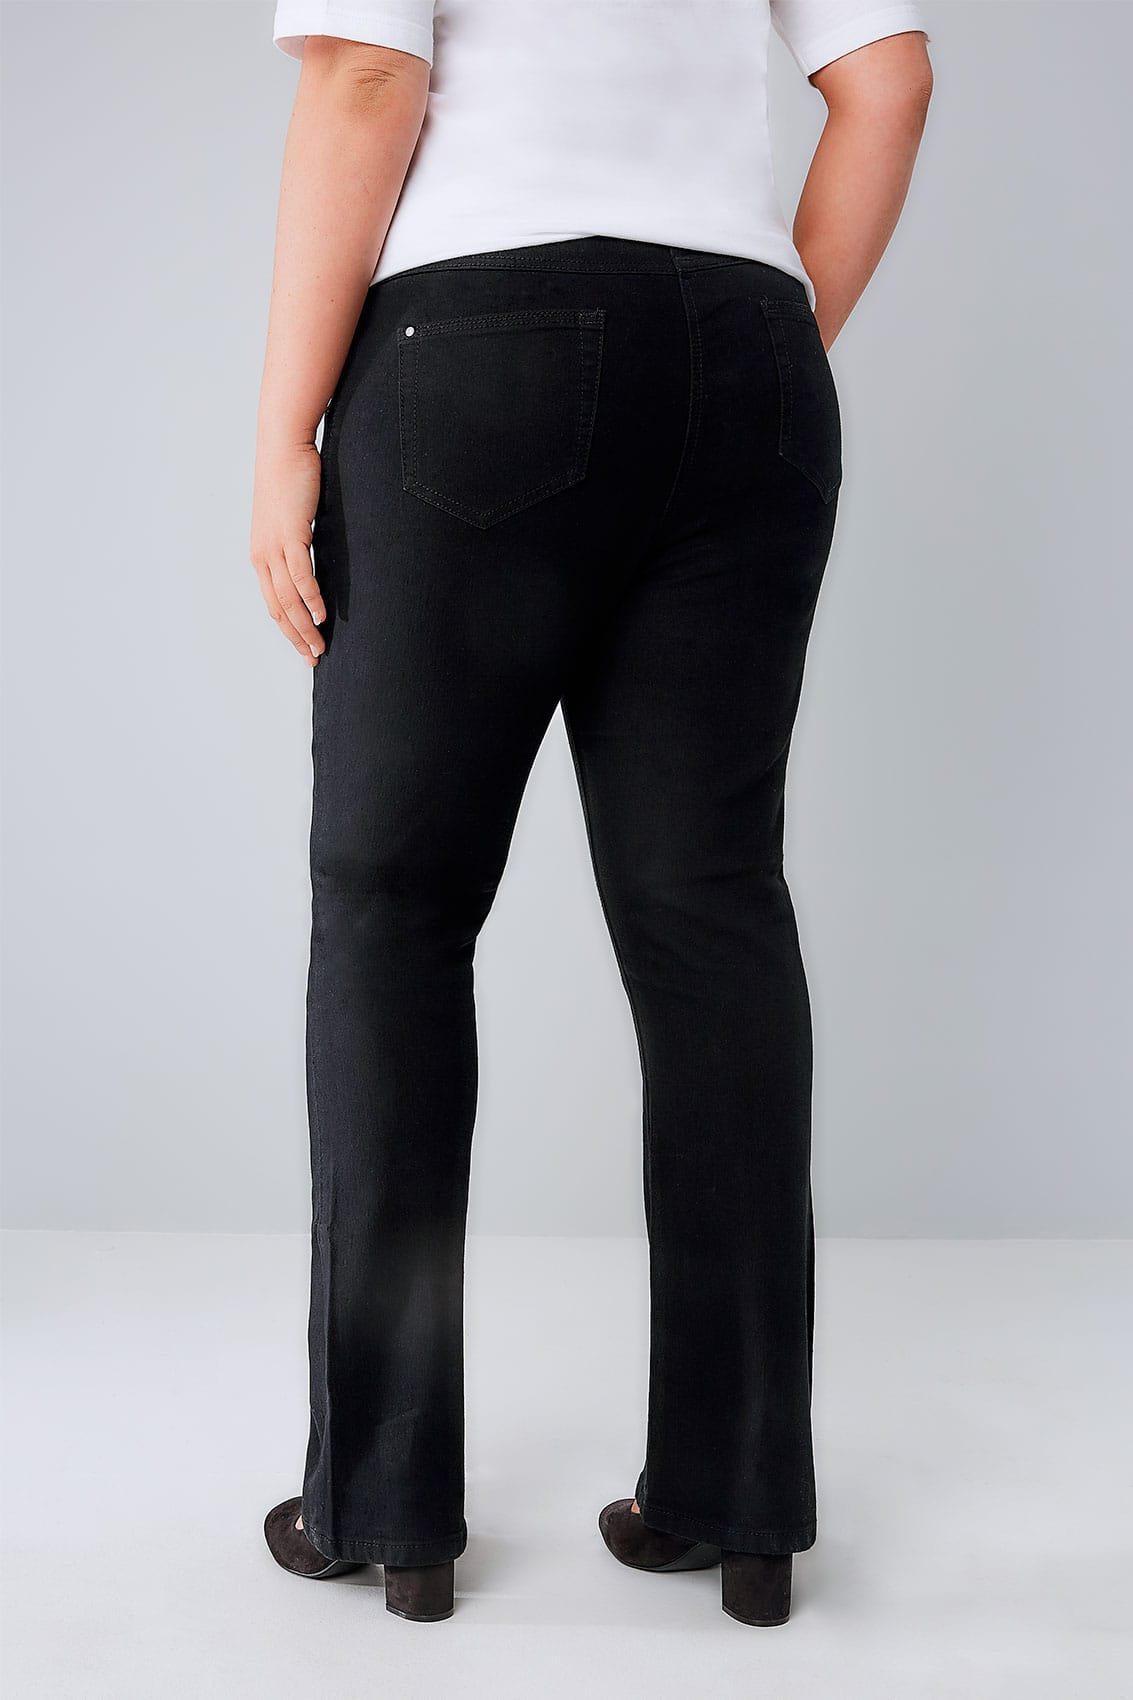 A basic, pull-on knit pant with modern bootcut legs. Easy-care, easy-wear, casual to sophisticated. This wrinkle-resistant pant drapes beautifully on the body and holds its shape and color.